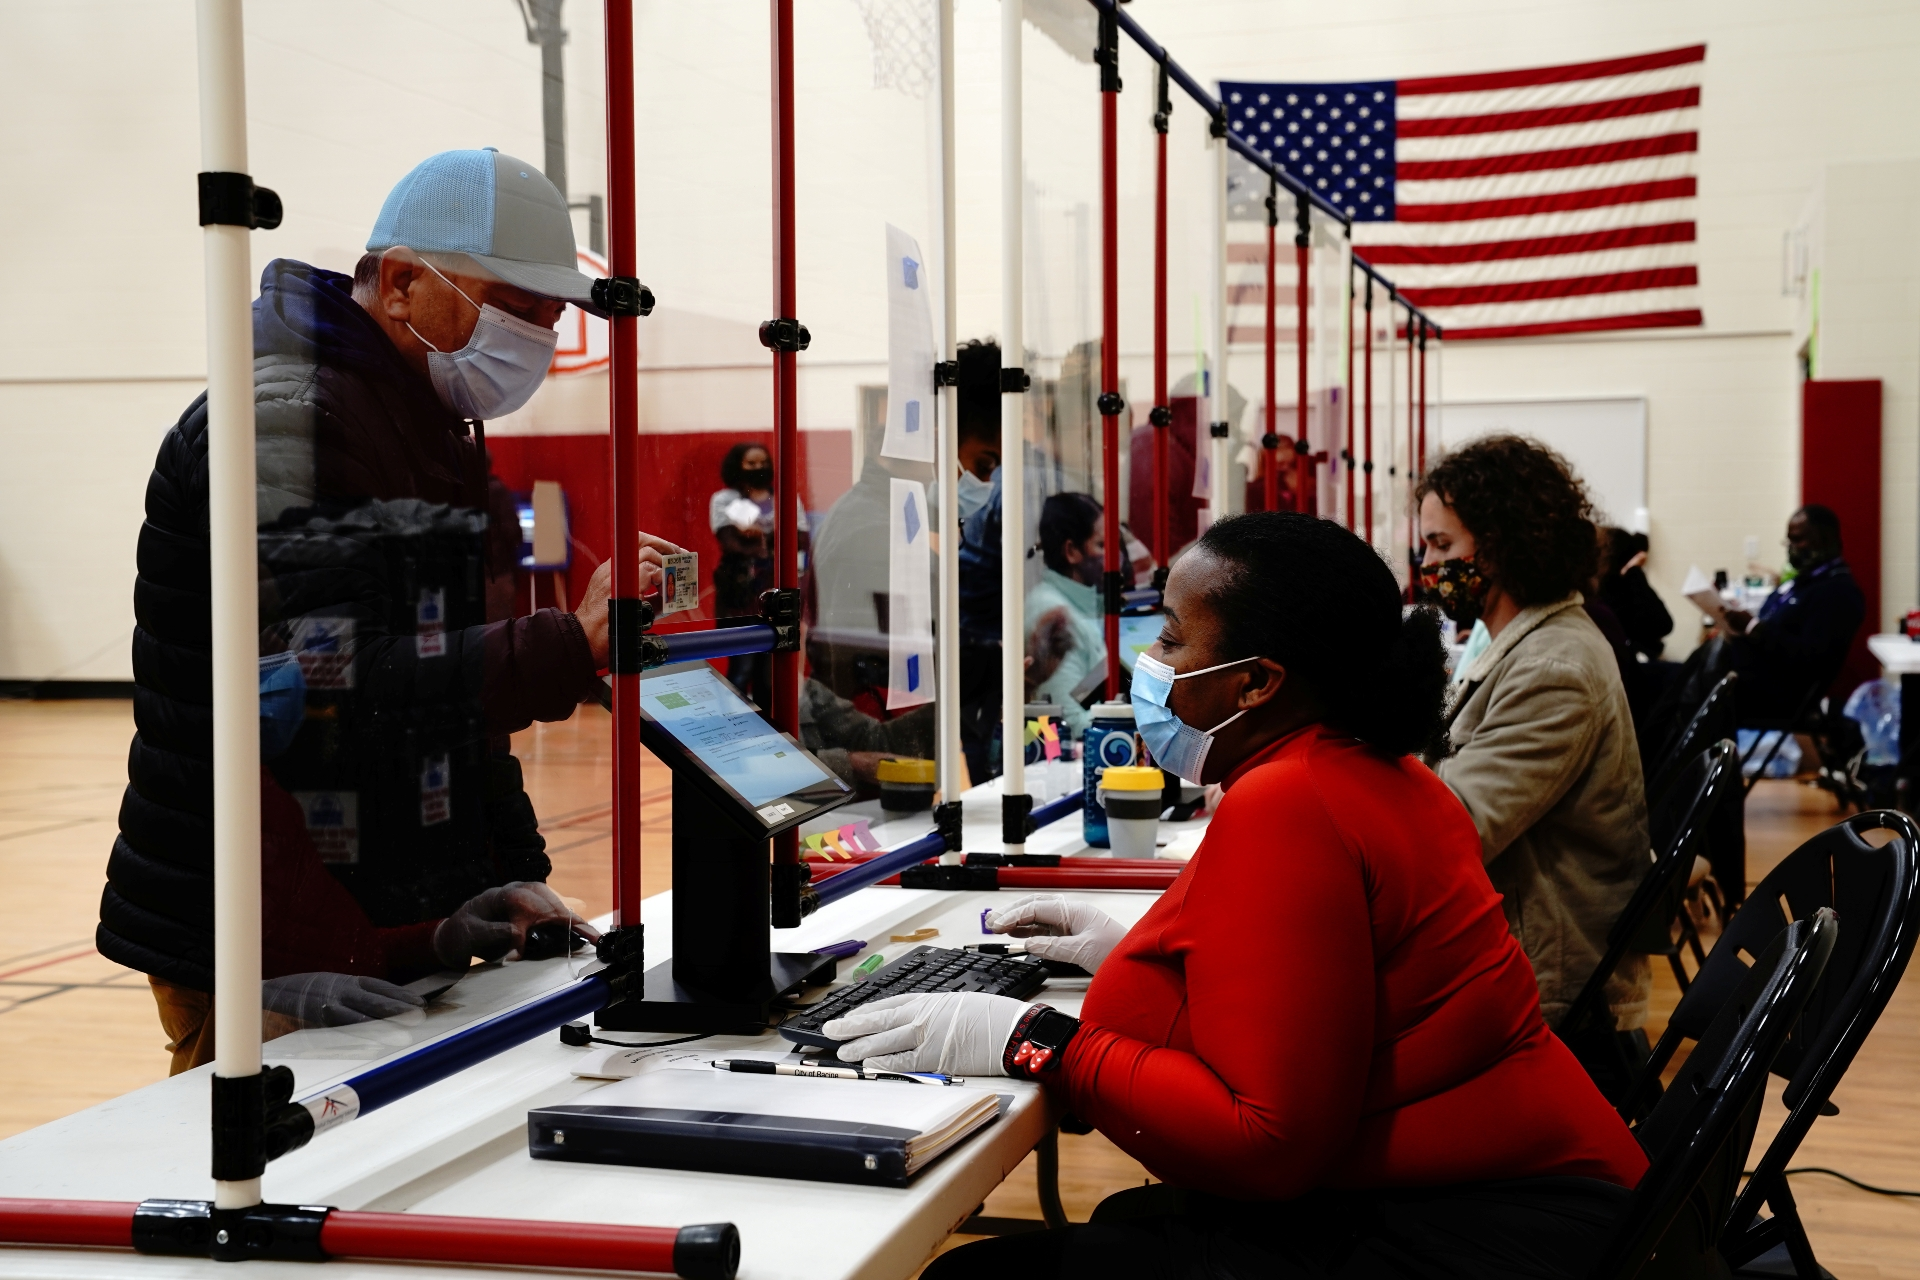 Photo: Poll worker Kim Stafford helps a voter on Election Day at a polling station inside Knapp Elementary School in Racine, Racine County, Wisconsin, U.S., November 3, 2020. Credit: REUTERS/Bing Guan